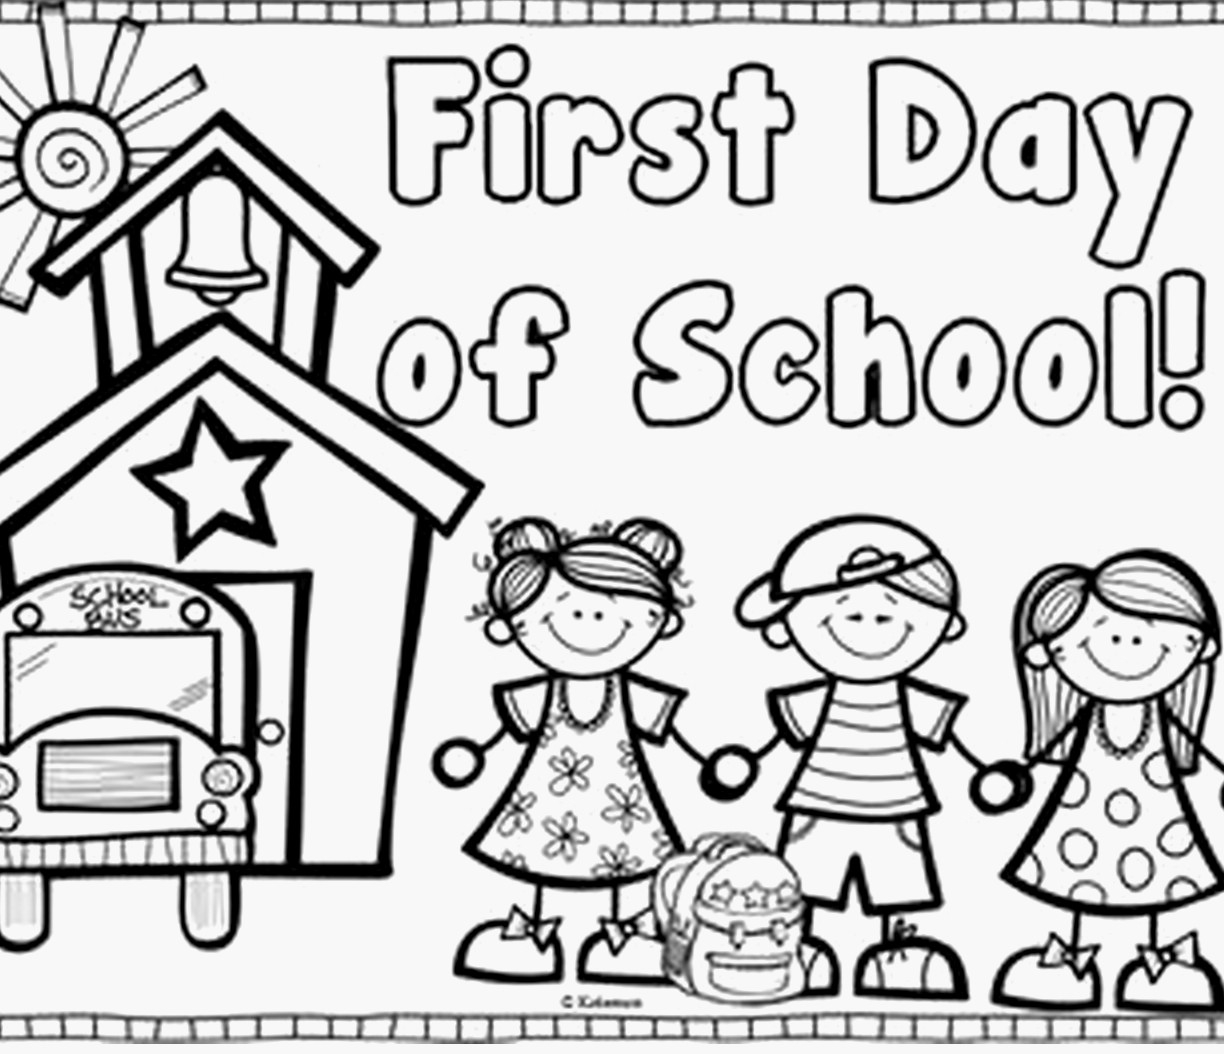 24 First Day Of School Coloring Pages for Kindergarten Gallery ...